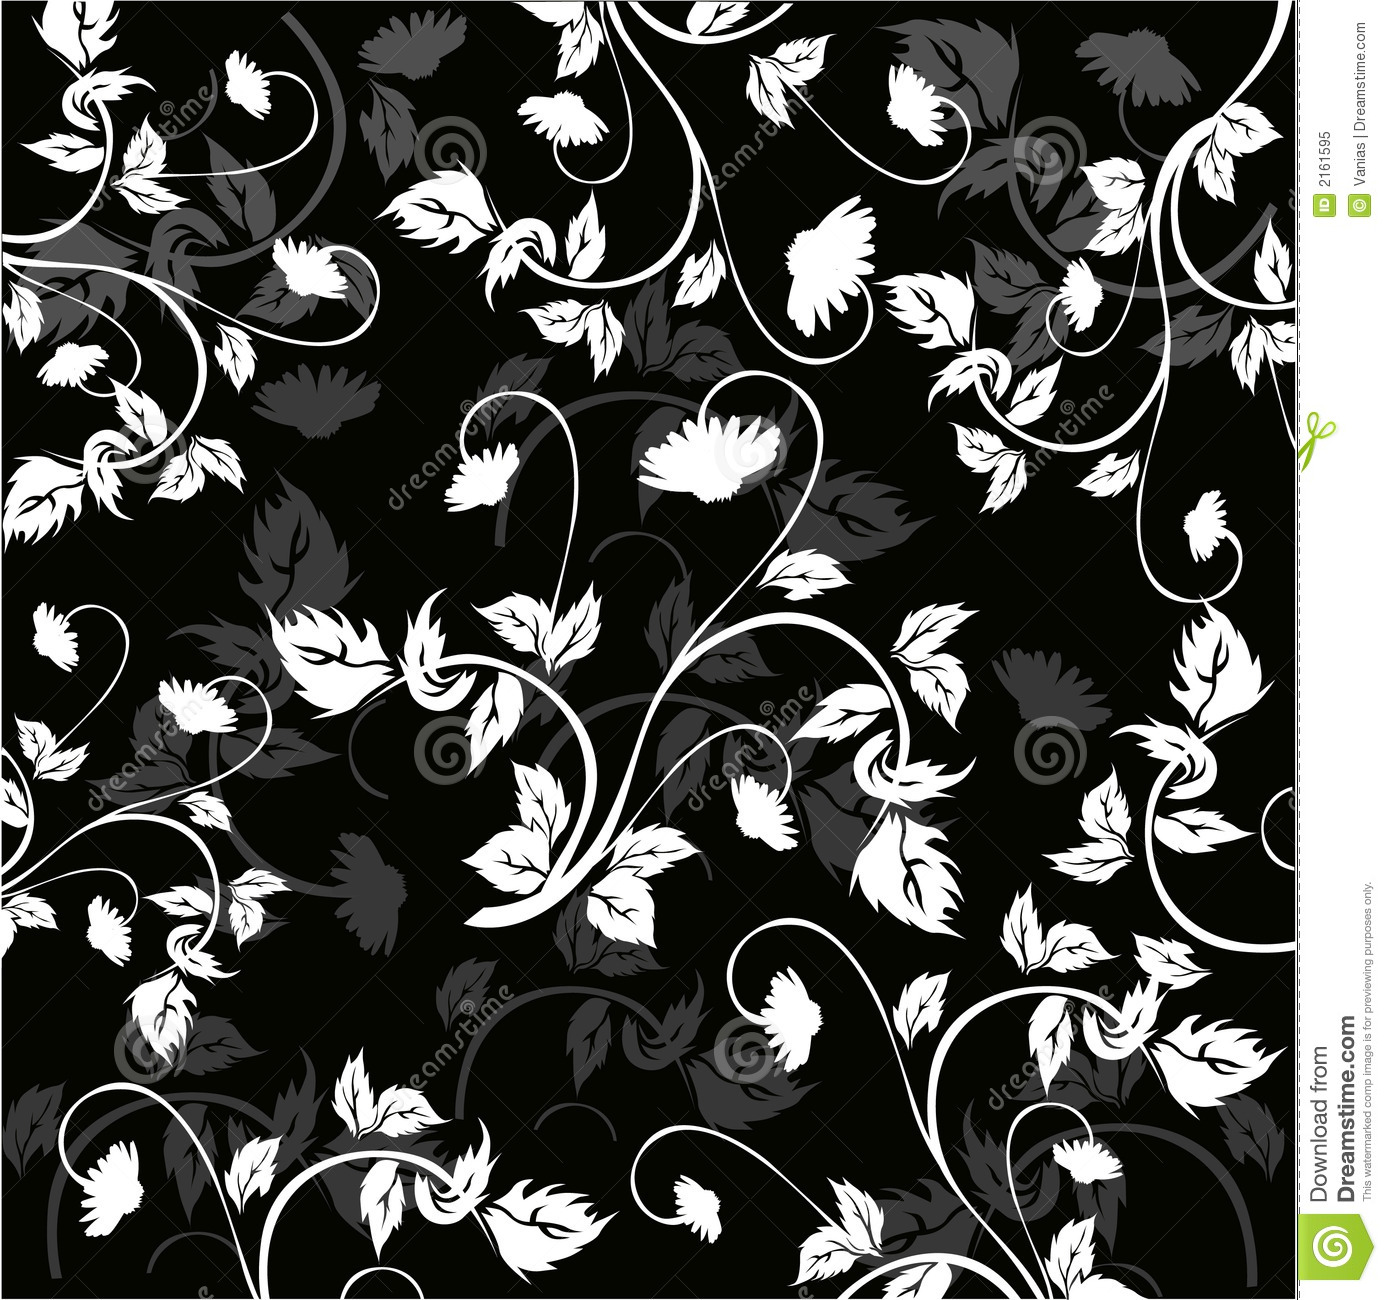 Floral Background Vector Stock Vector Illustration Of Natural  -> Floral Fundo Preto